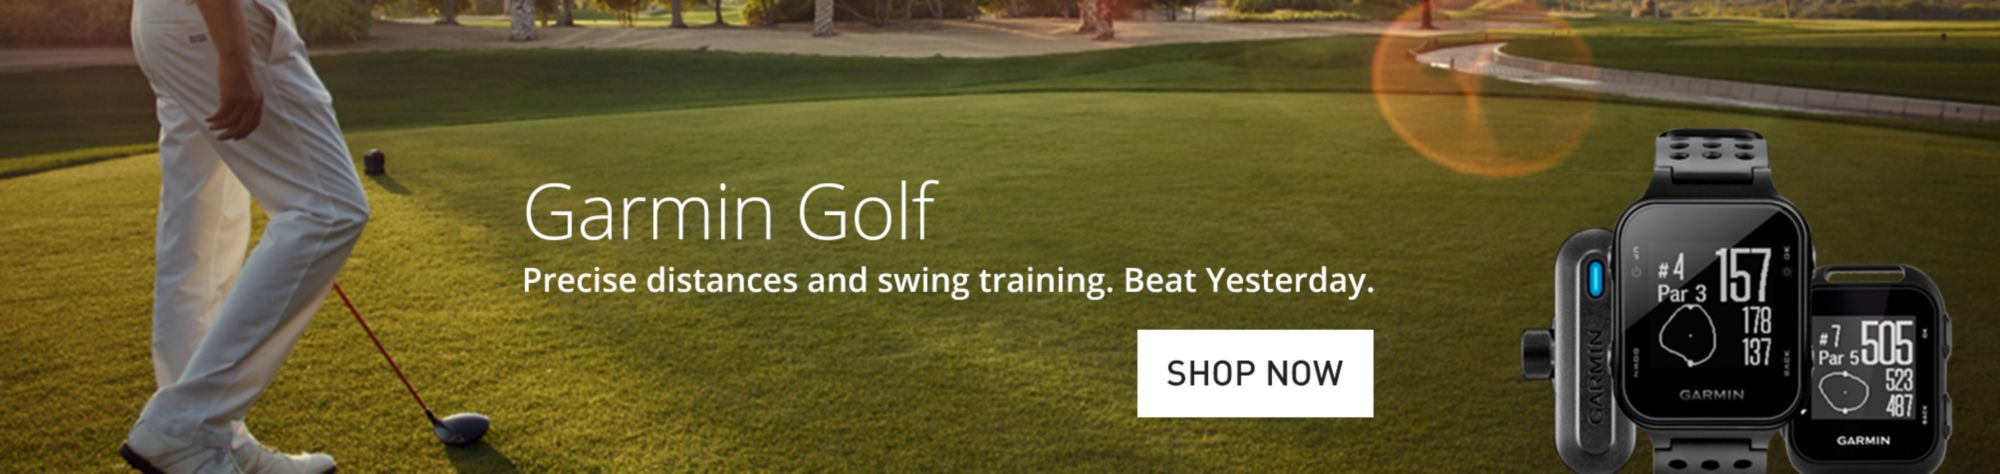 Shop Garmin Golf